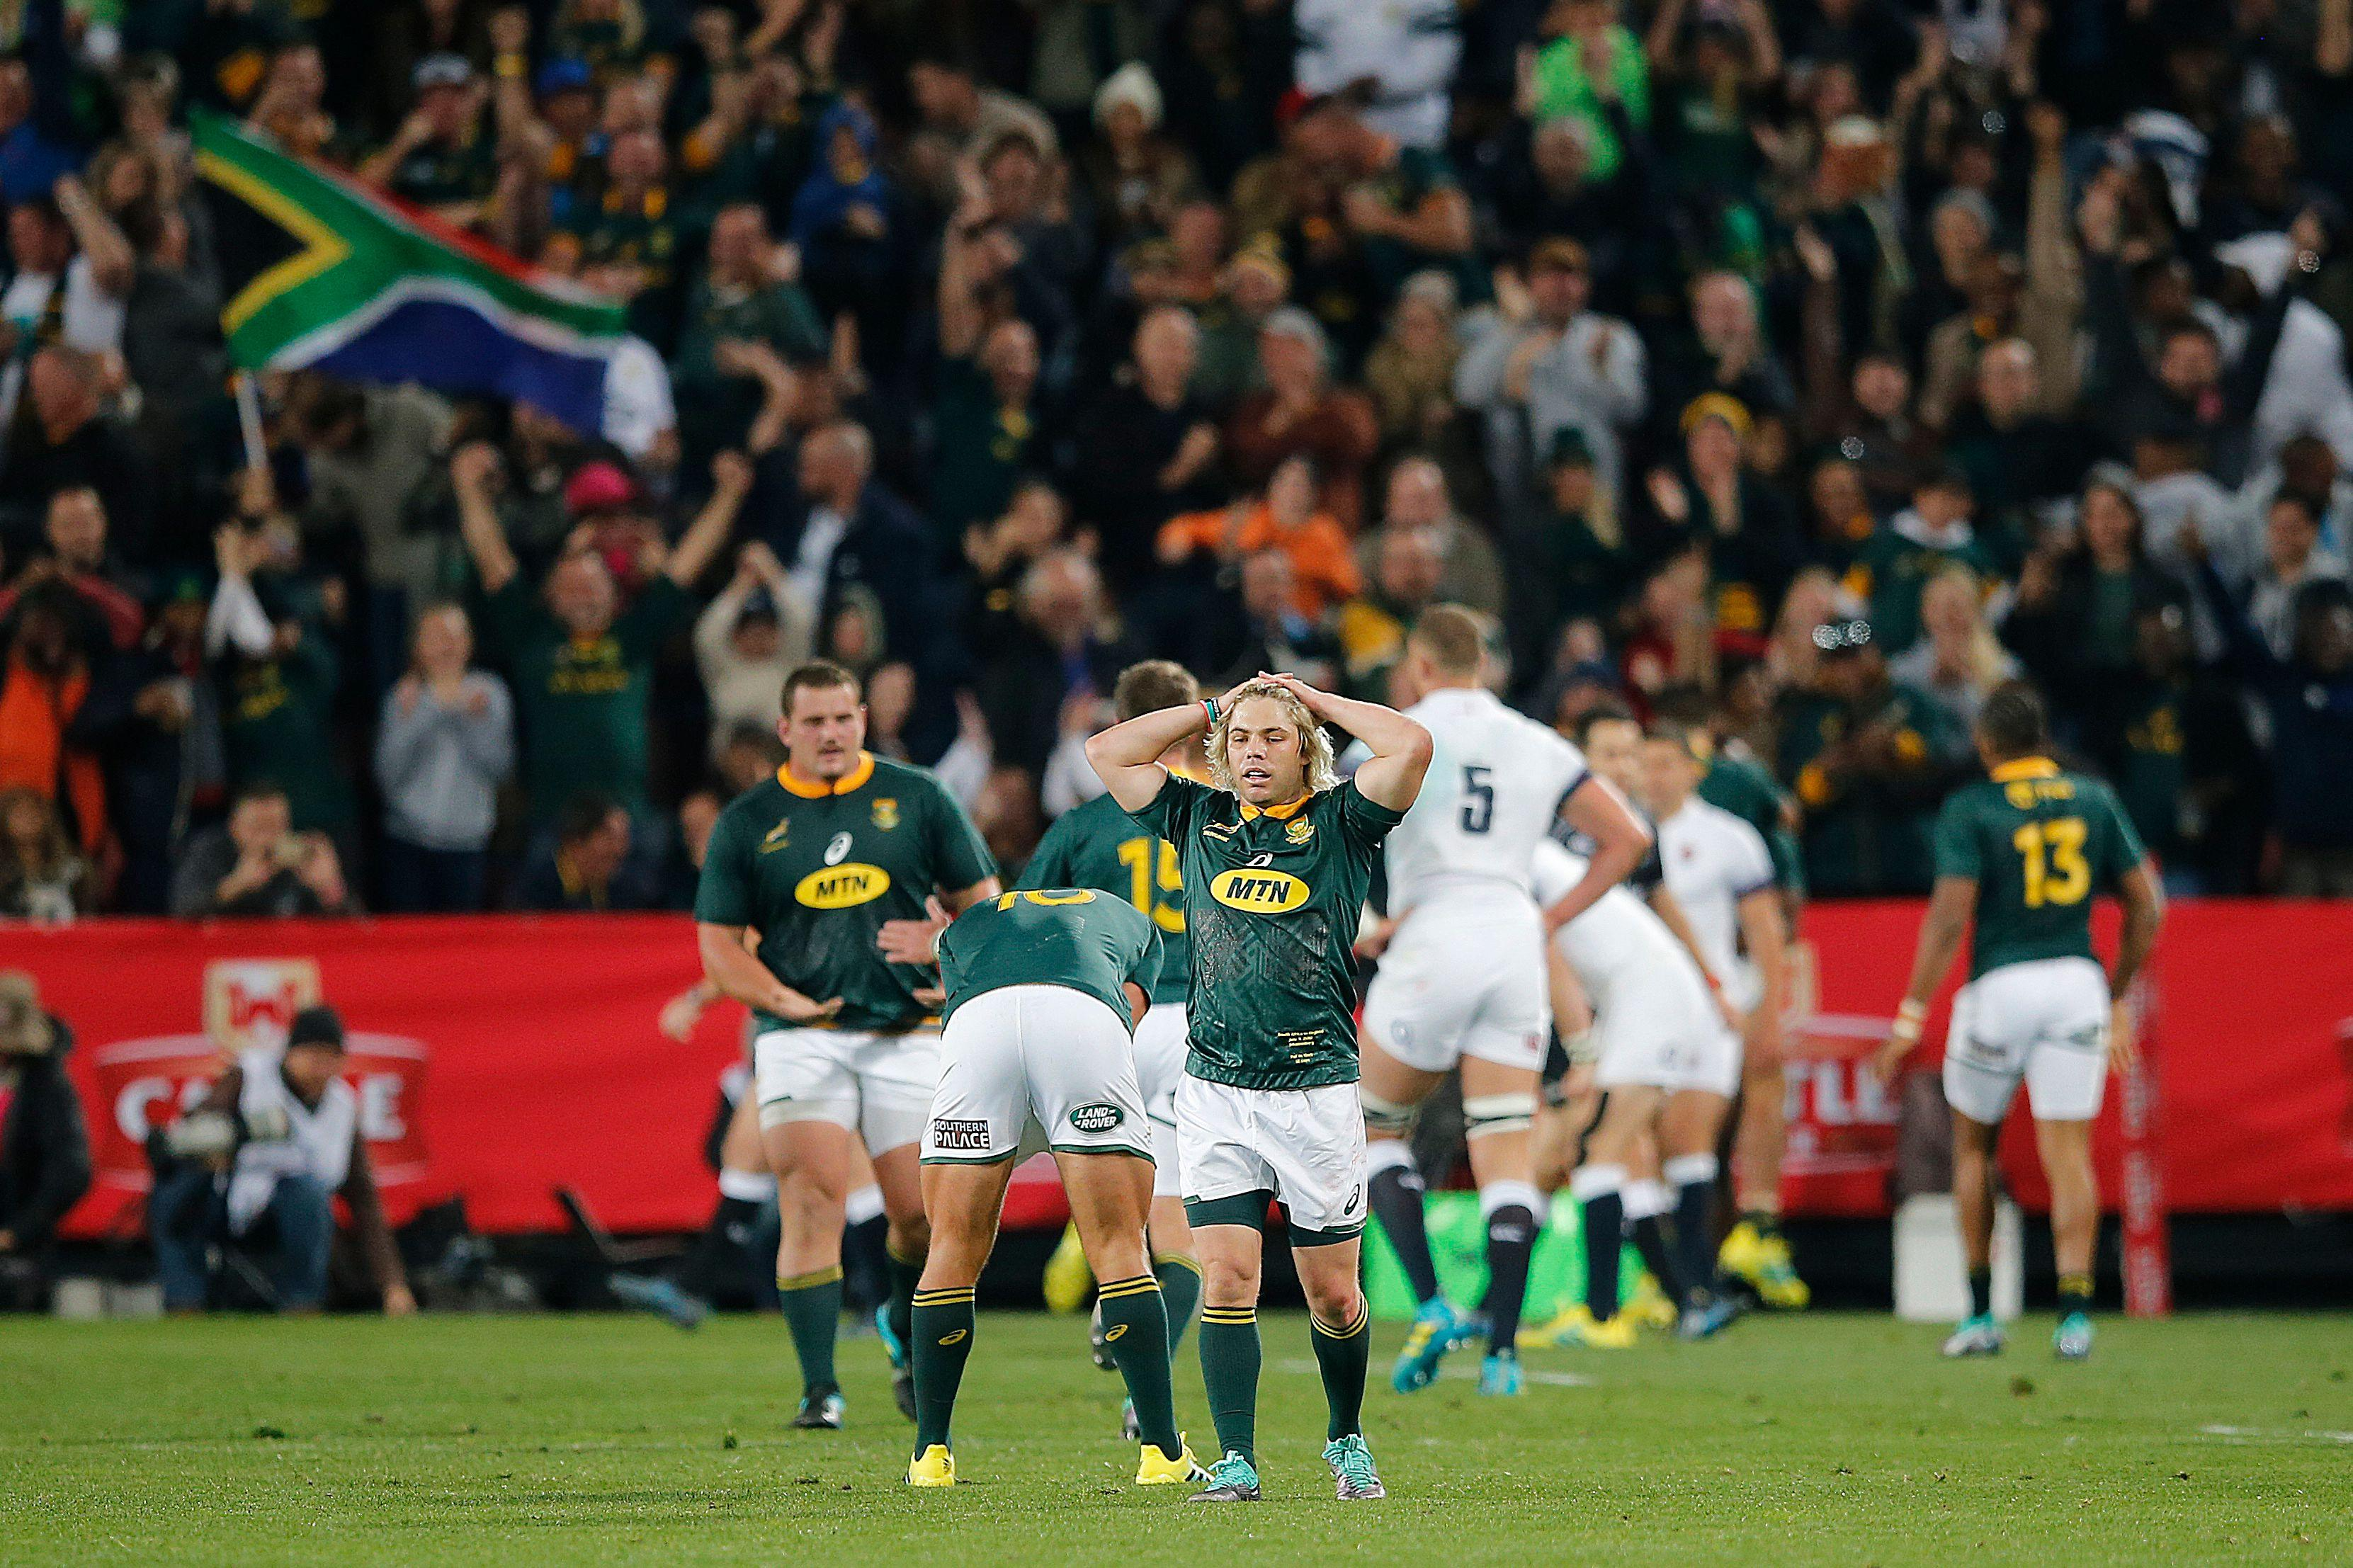 South African fly-half Fa de Klerk reacts after England raced into a 21-point lead